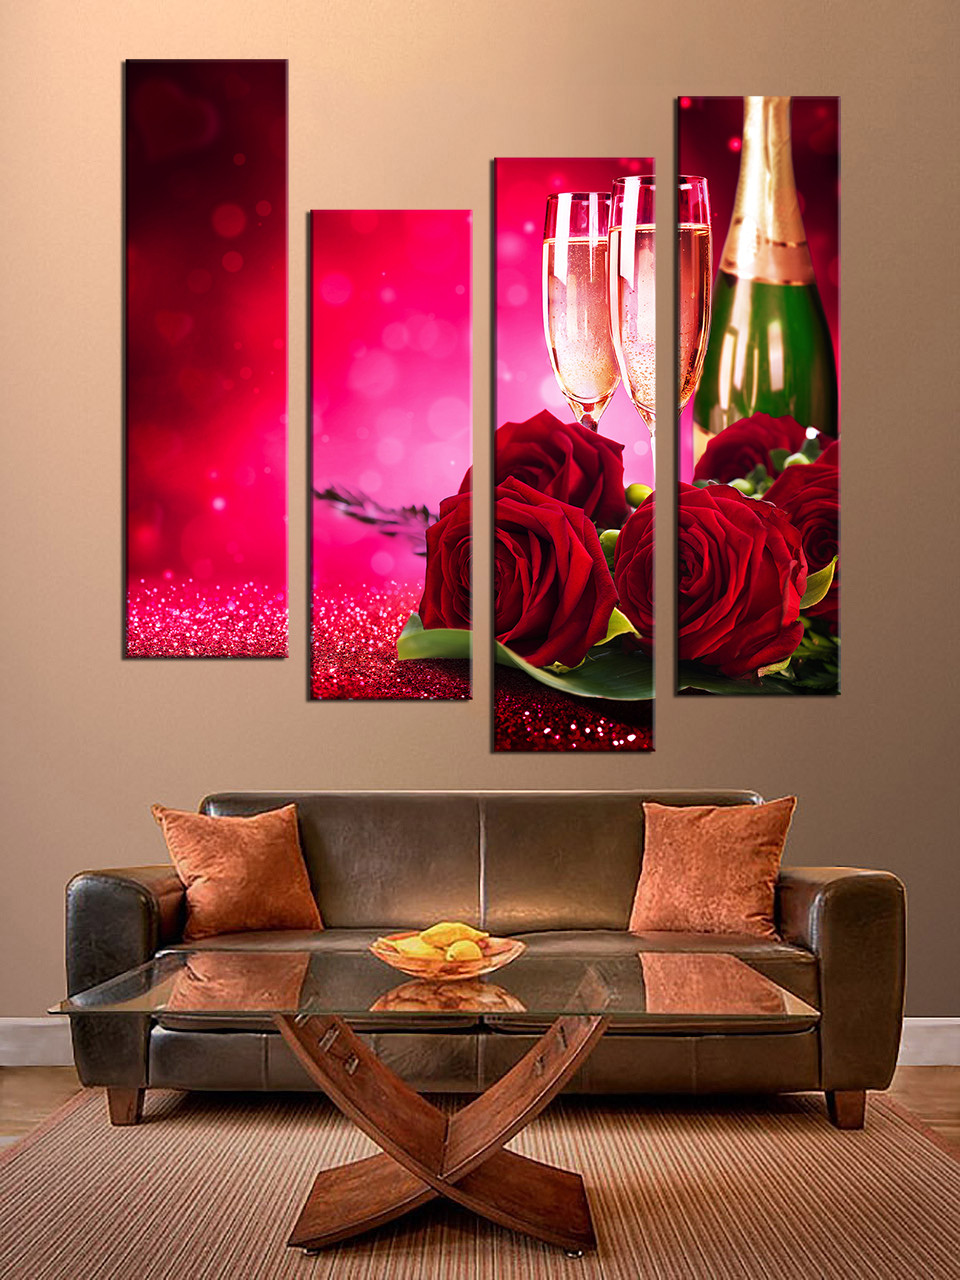 Art Décor: 4 Piece Canvas Photography, Red Huge Canvas Print, Red